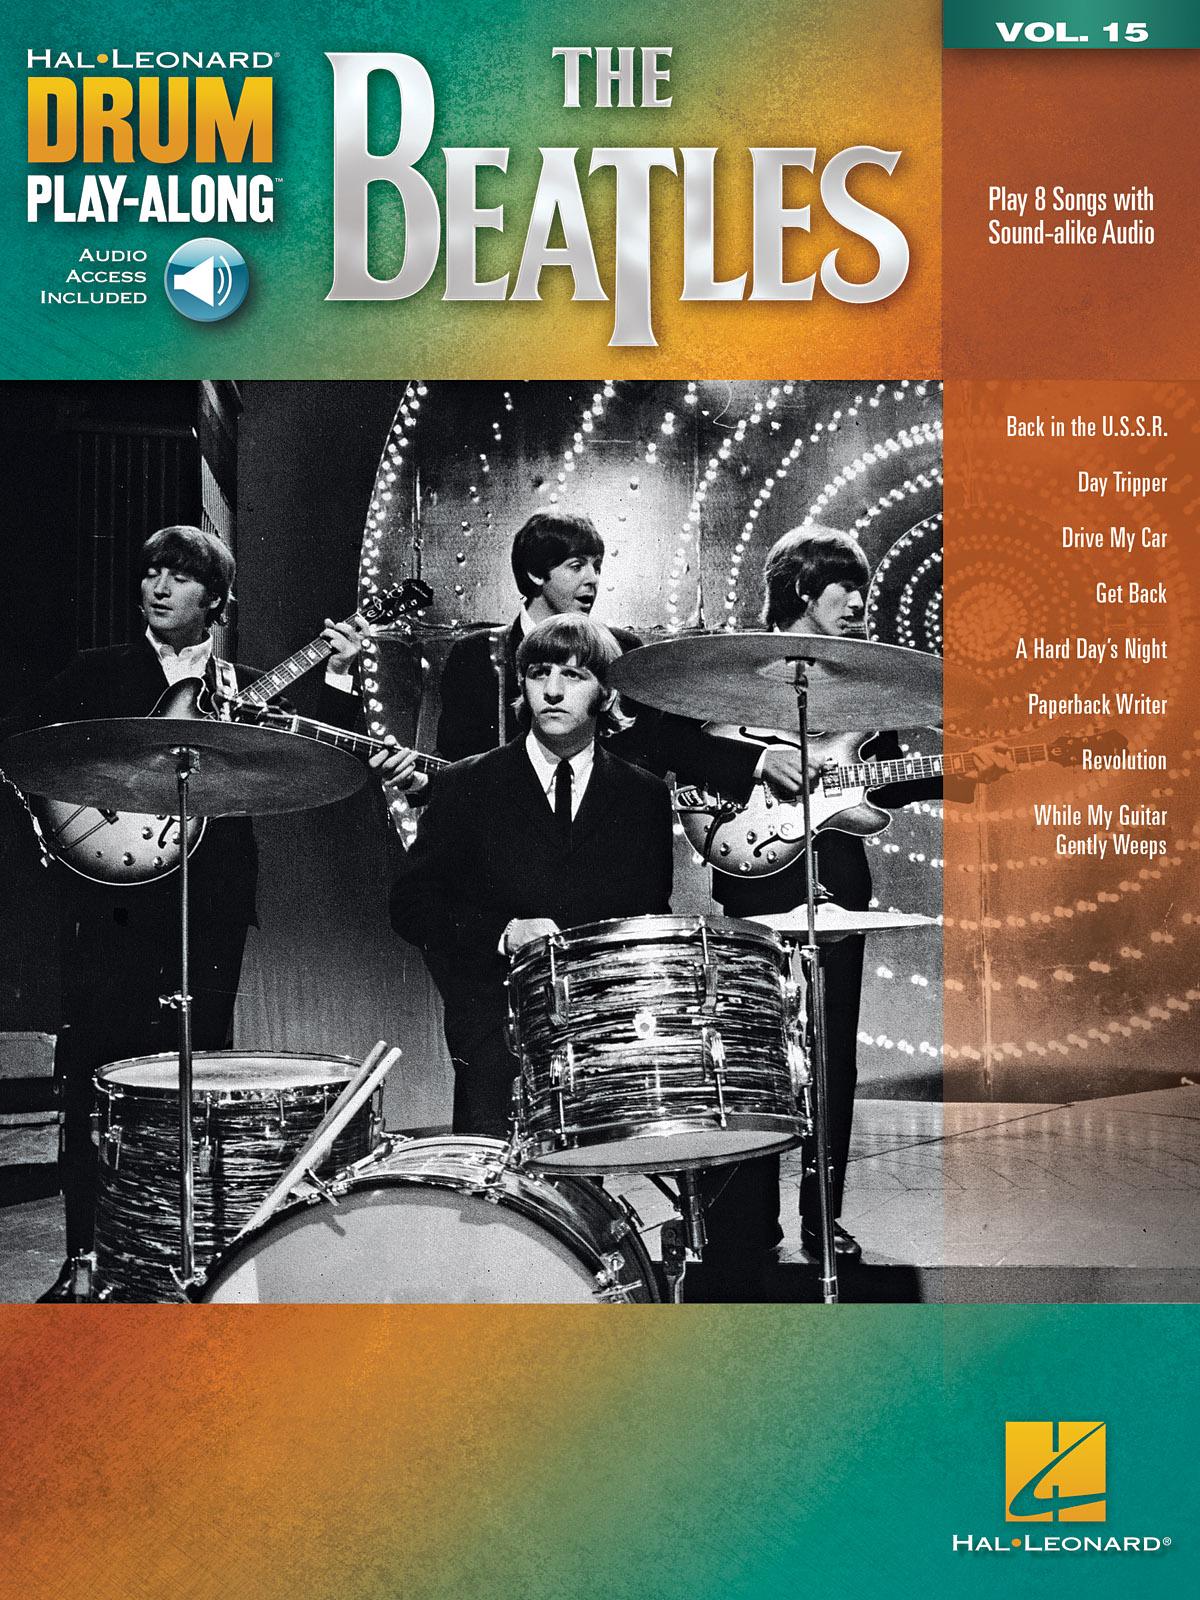 Drum Play-Along Volume 15: The Beatles (Hal Leonard Drum Play-Along)